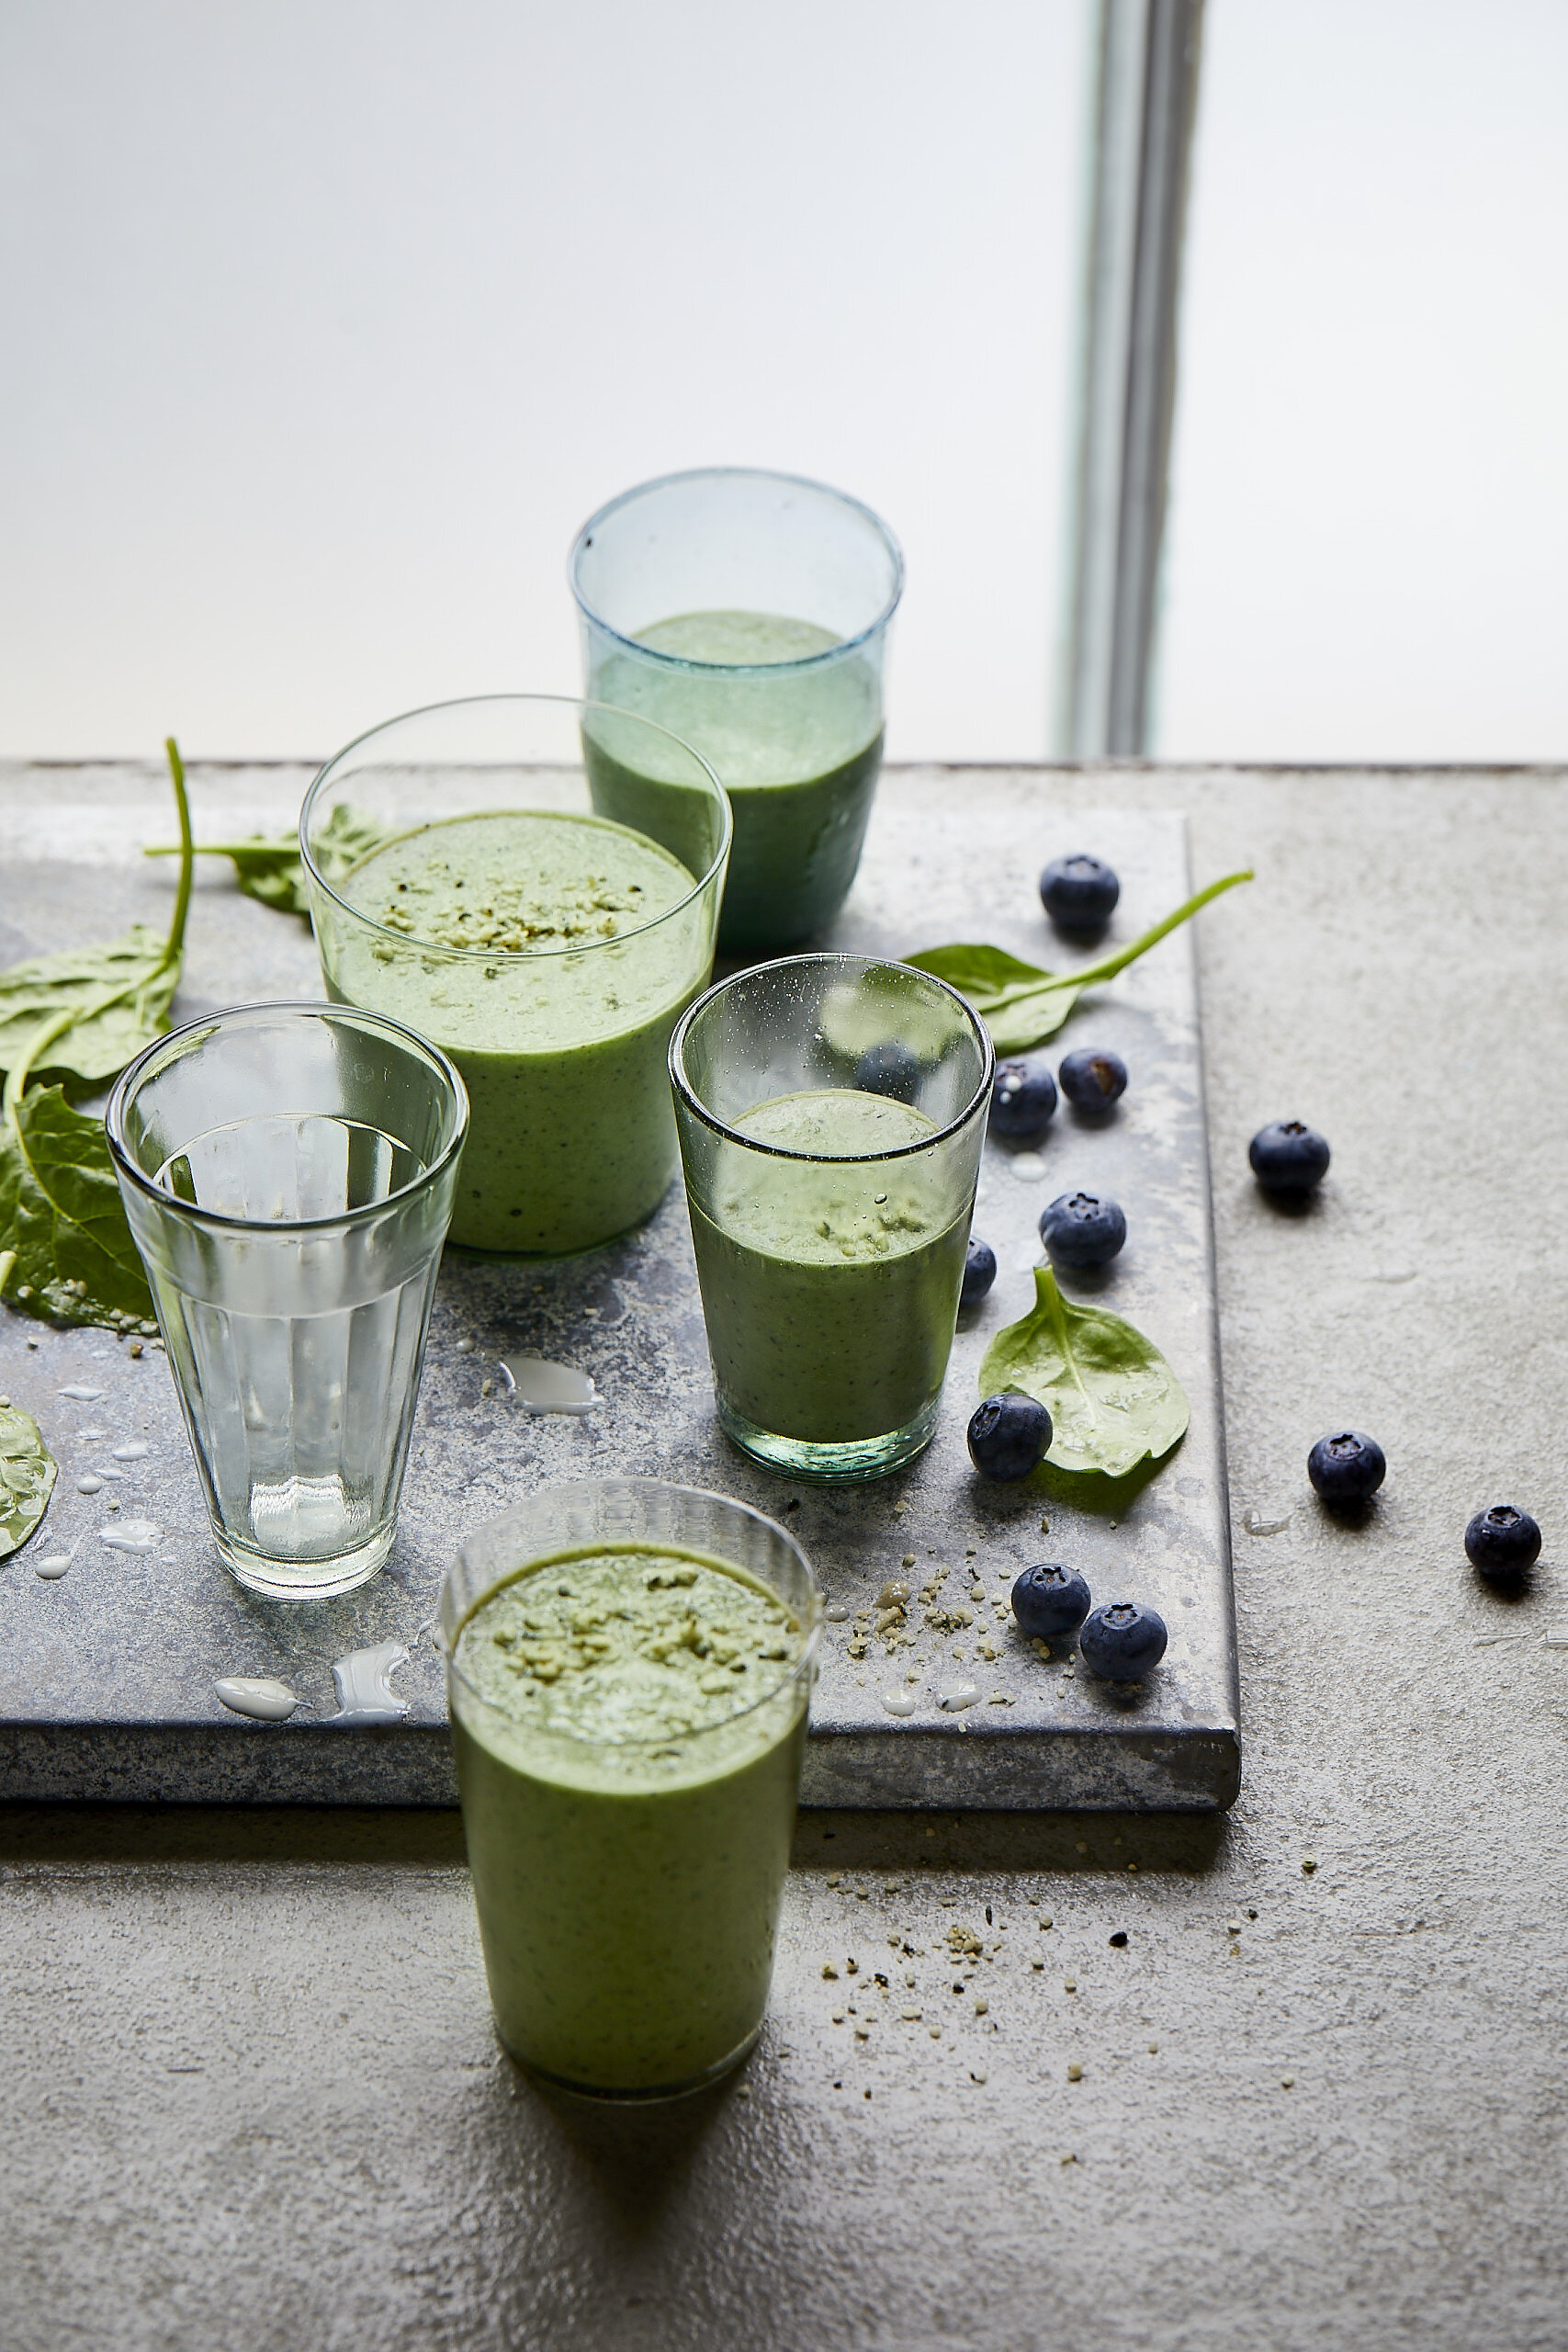 04.04.19_More_Plants_029_green_smoothie.jpg